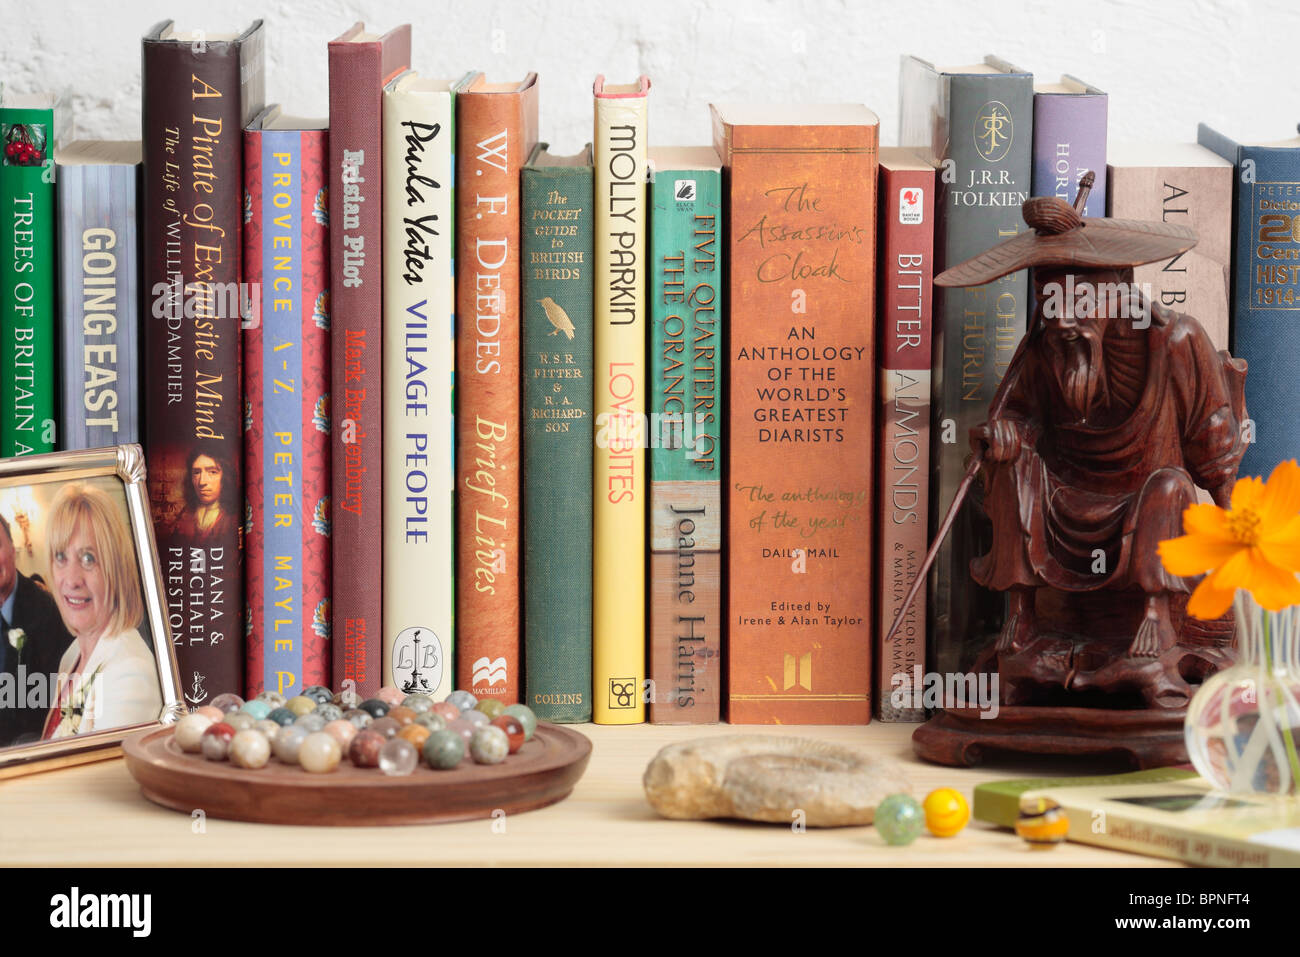 Bookshelf of Mixed Books, Carved Figure, Ammonite Fossil, Game of Solitaire and Picture Frame. - Stock Image